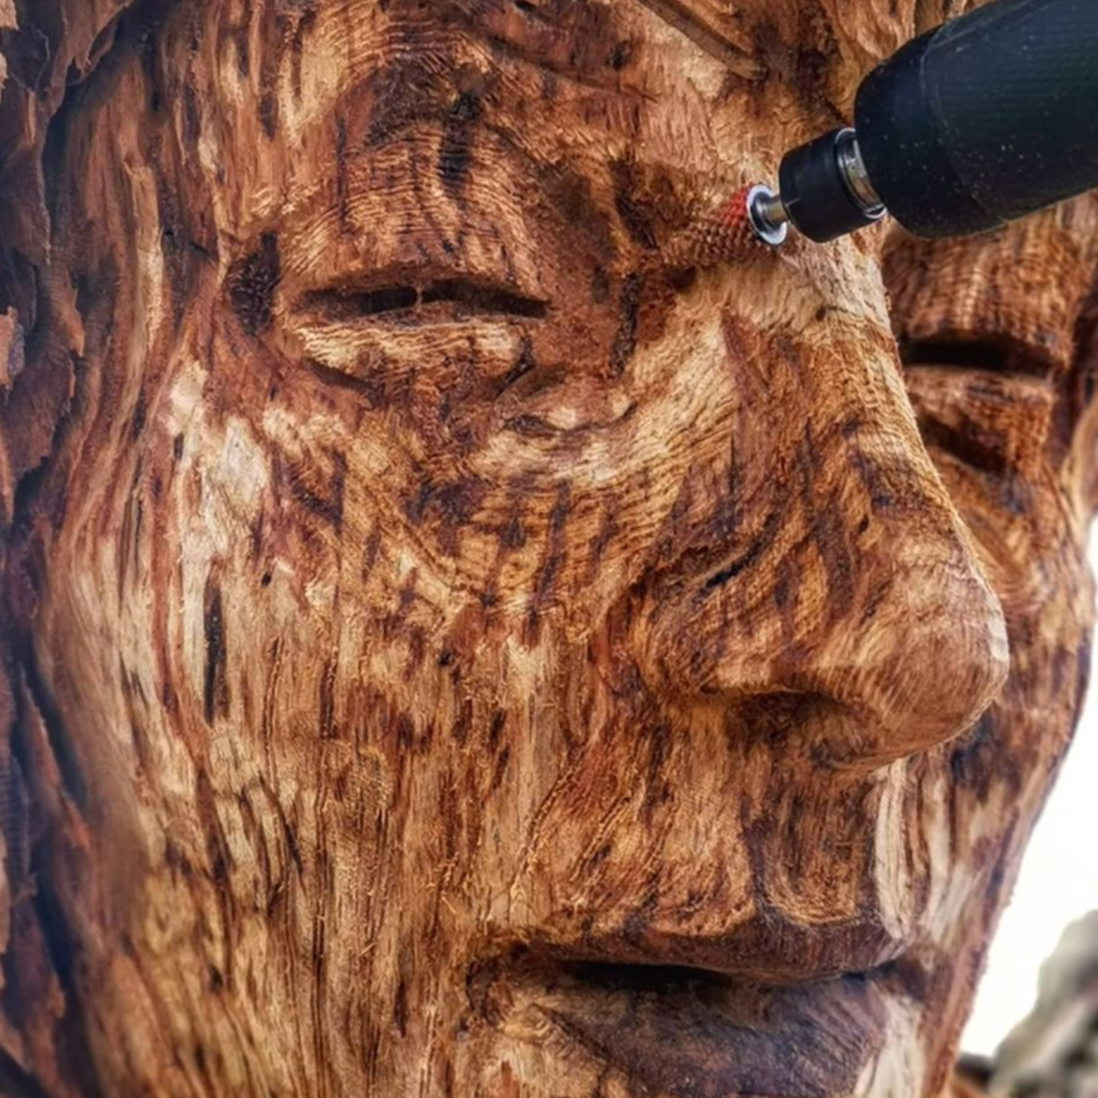 close up of simon o'rourke using a fine taper bit to shape the face of a female sculpture. the bit is one of his favourite tools for carving faces.